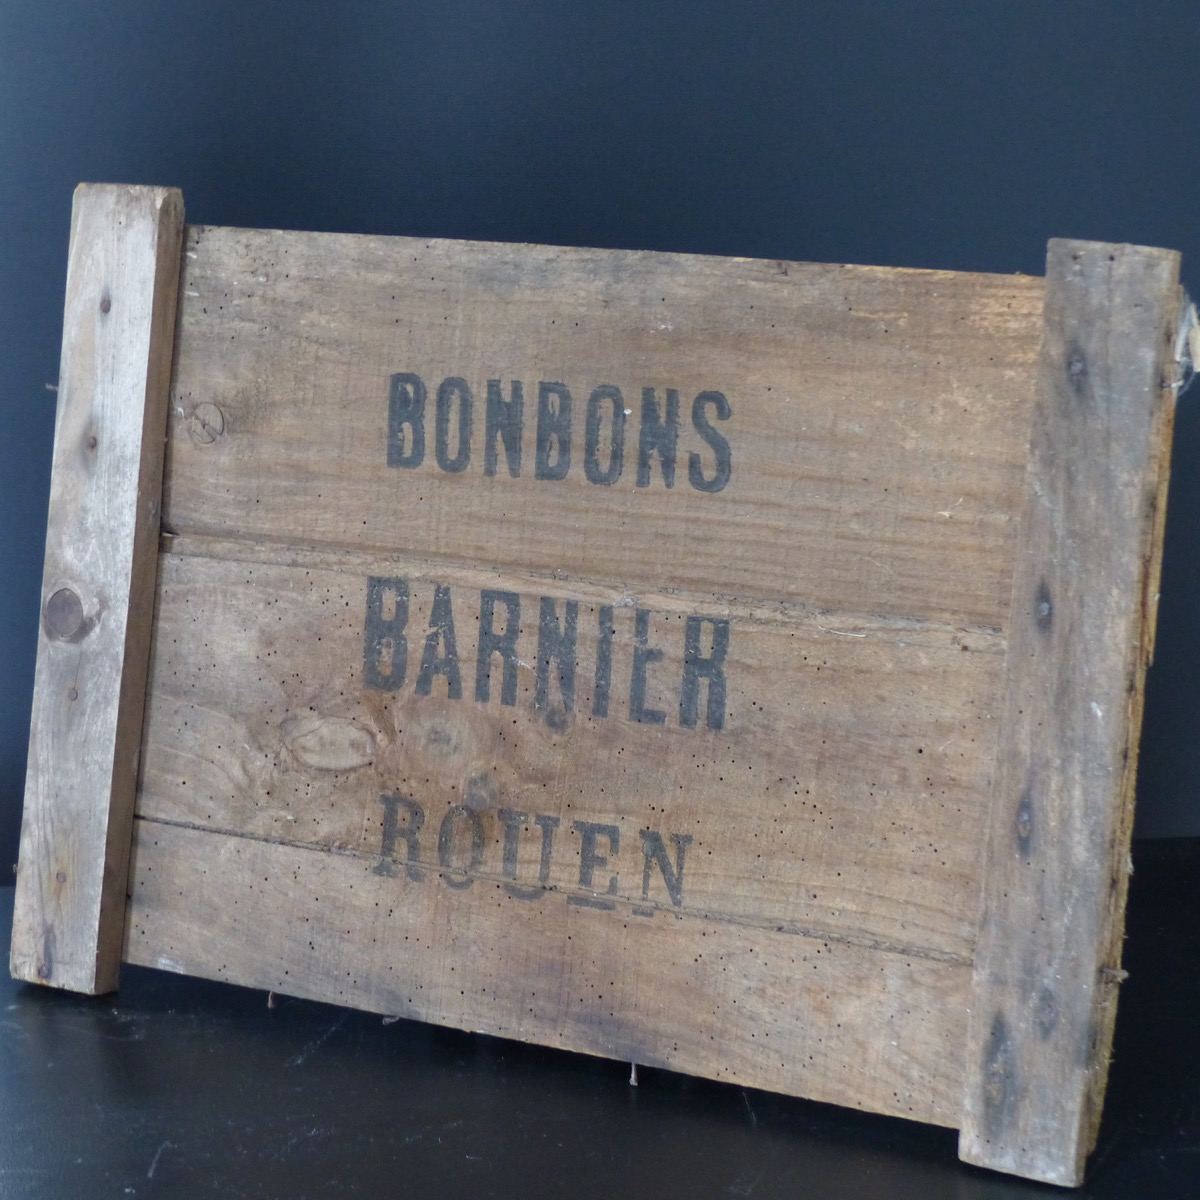 plaque en bois bonbons barnier lignedebrocante brocante en ligne chine pour vous meubles. Black Bedroom Furniture Sets. Home Design Ideas